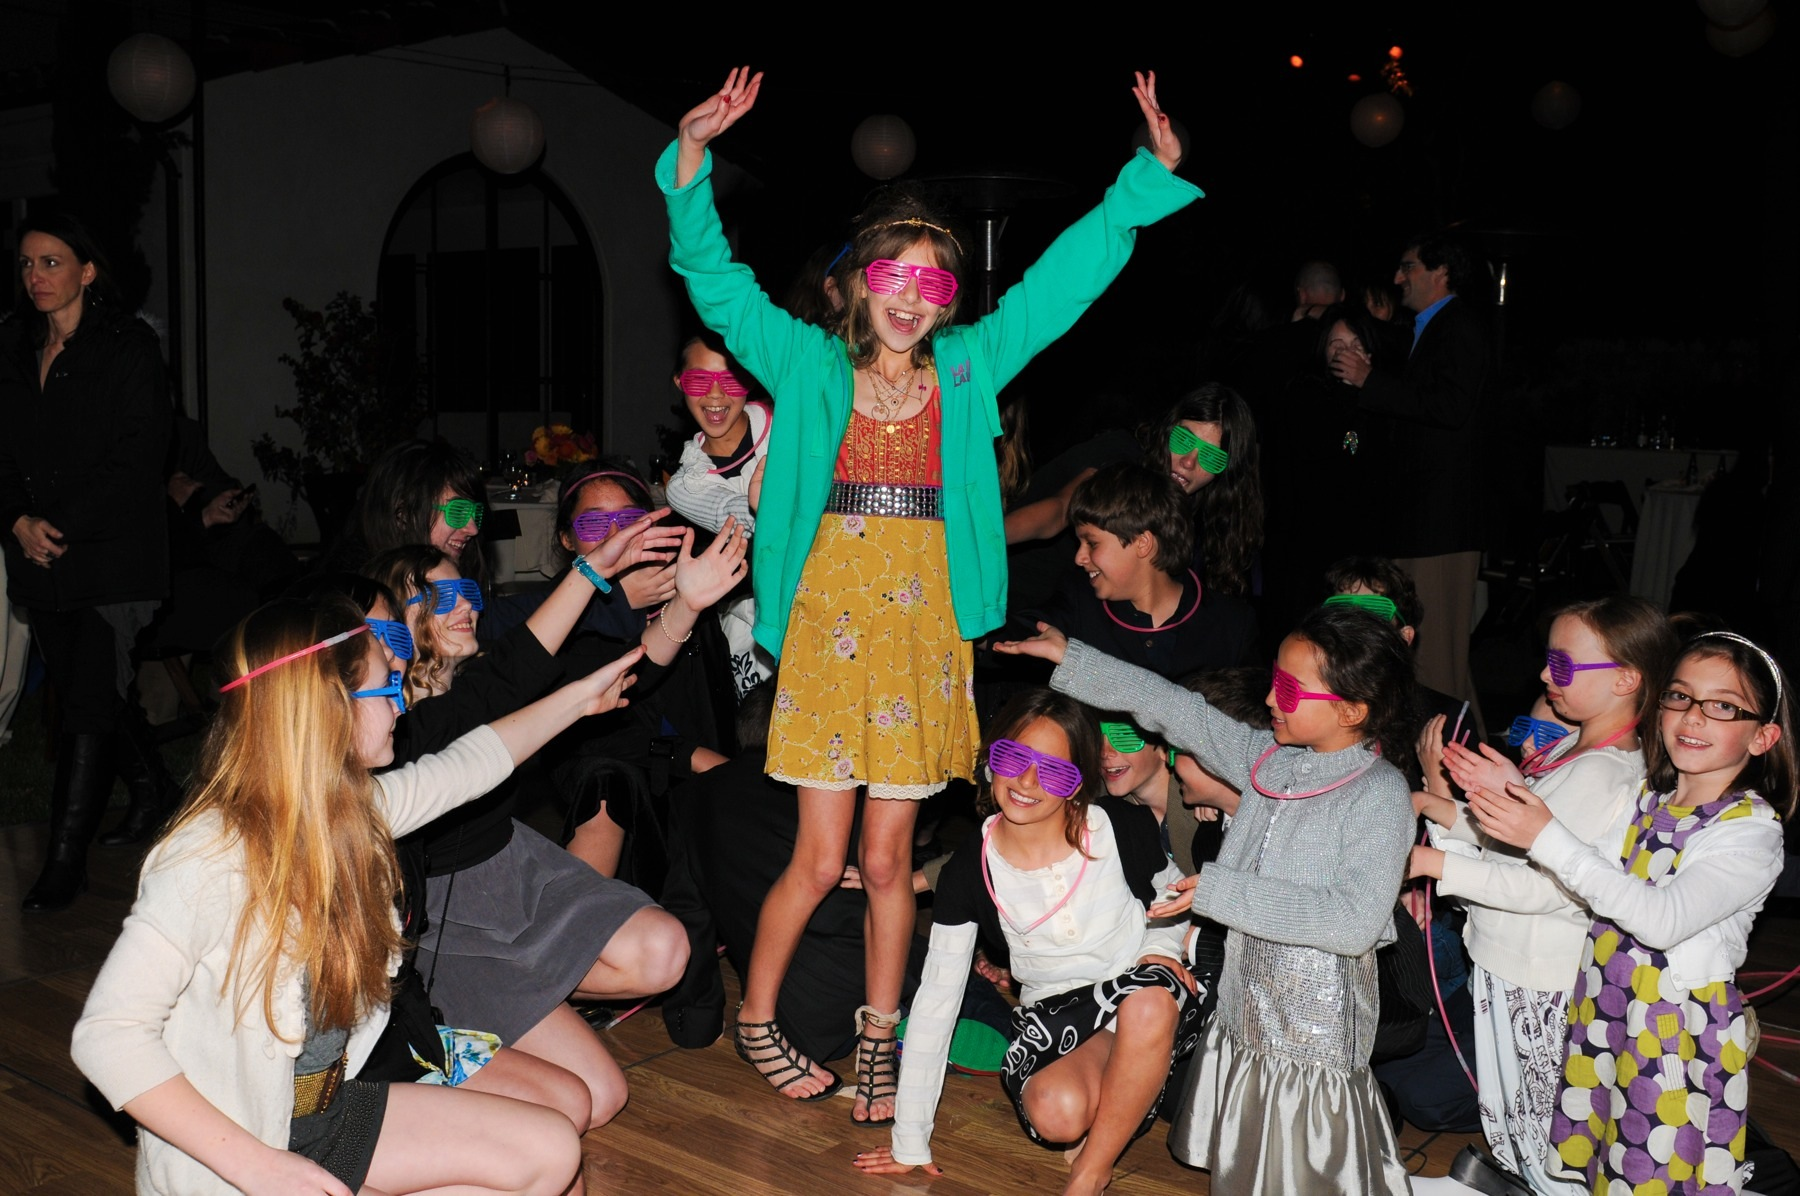 bat_mitzvah_bar_mitzvah_san_francisco_bay_area_photographer_party_photography_112